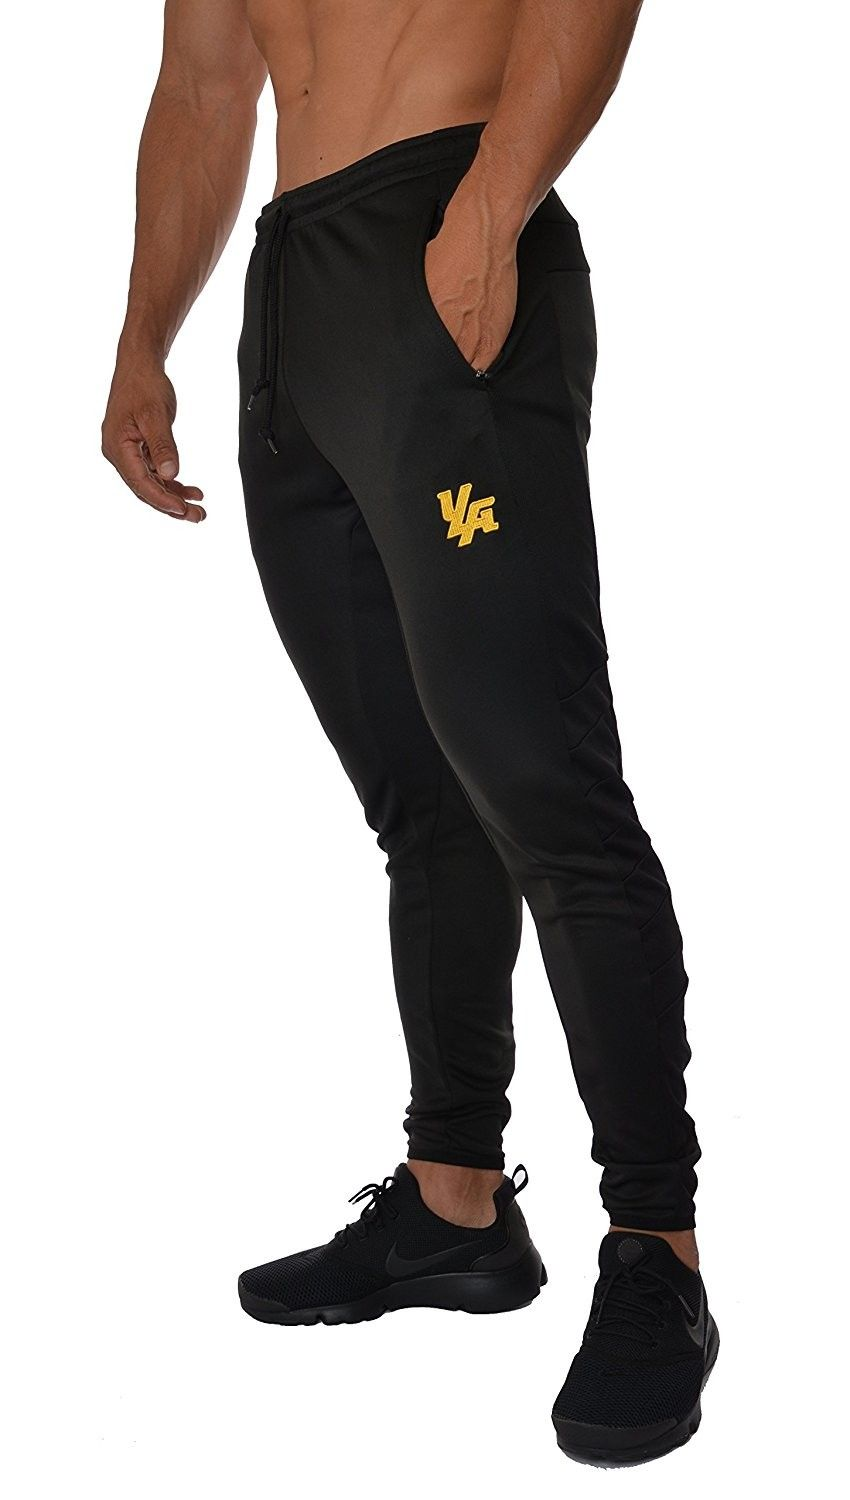 Mens Soccer Training pants tapered fit 5 colors All